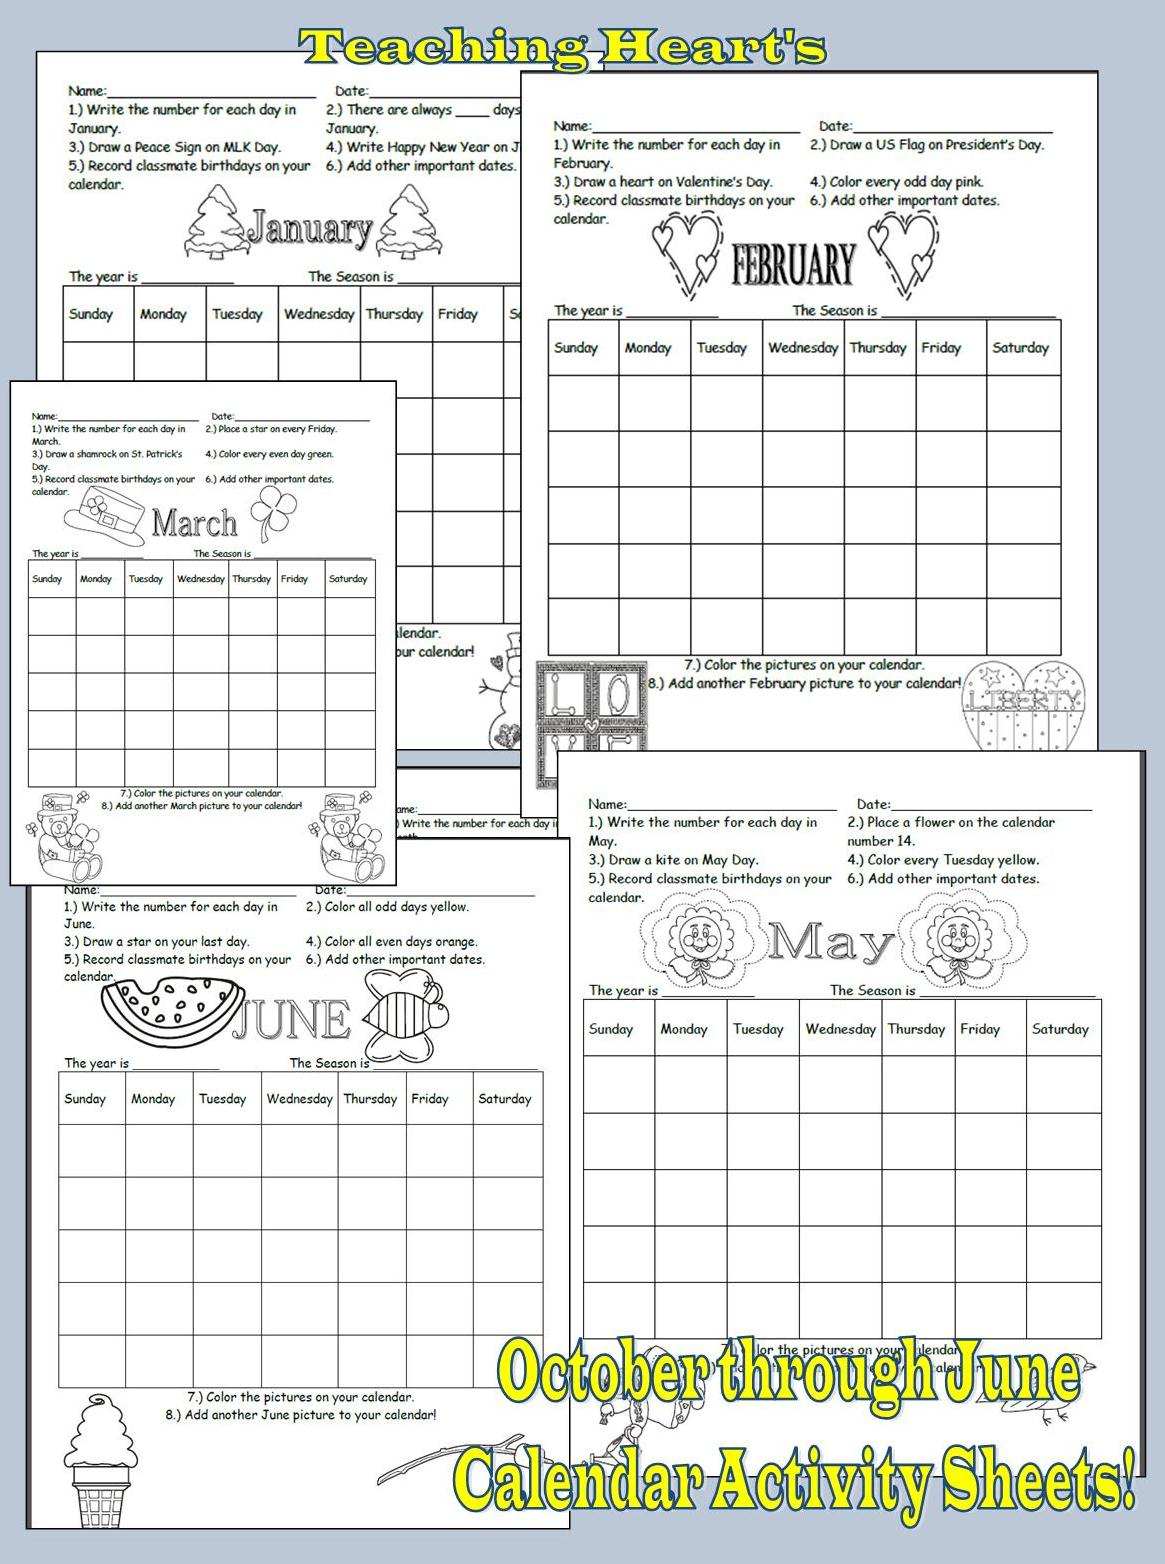 Calendar Skill Activity Sheets Teaching Heart Blog